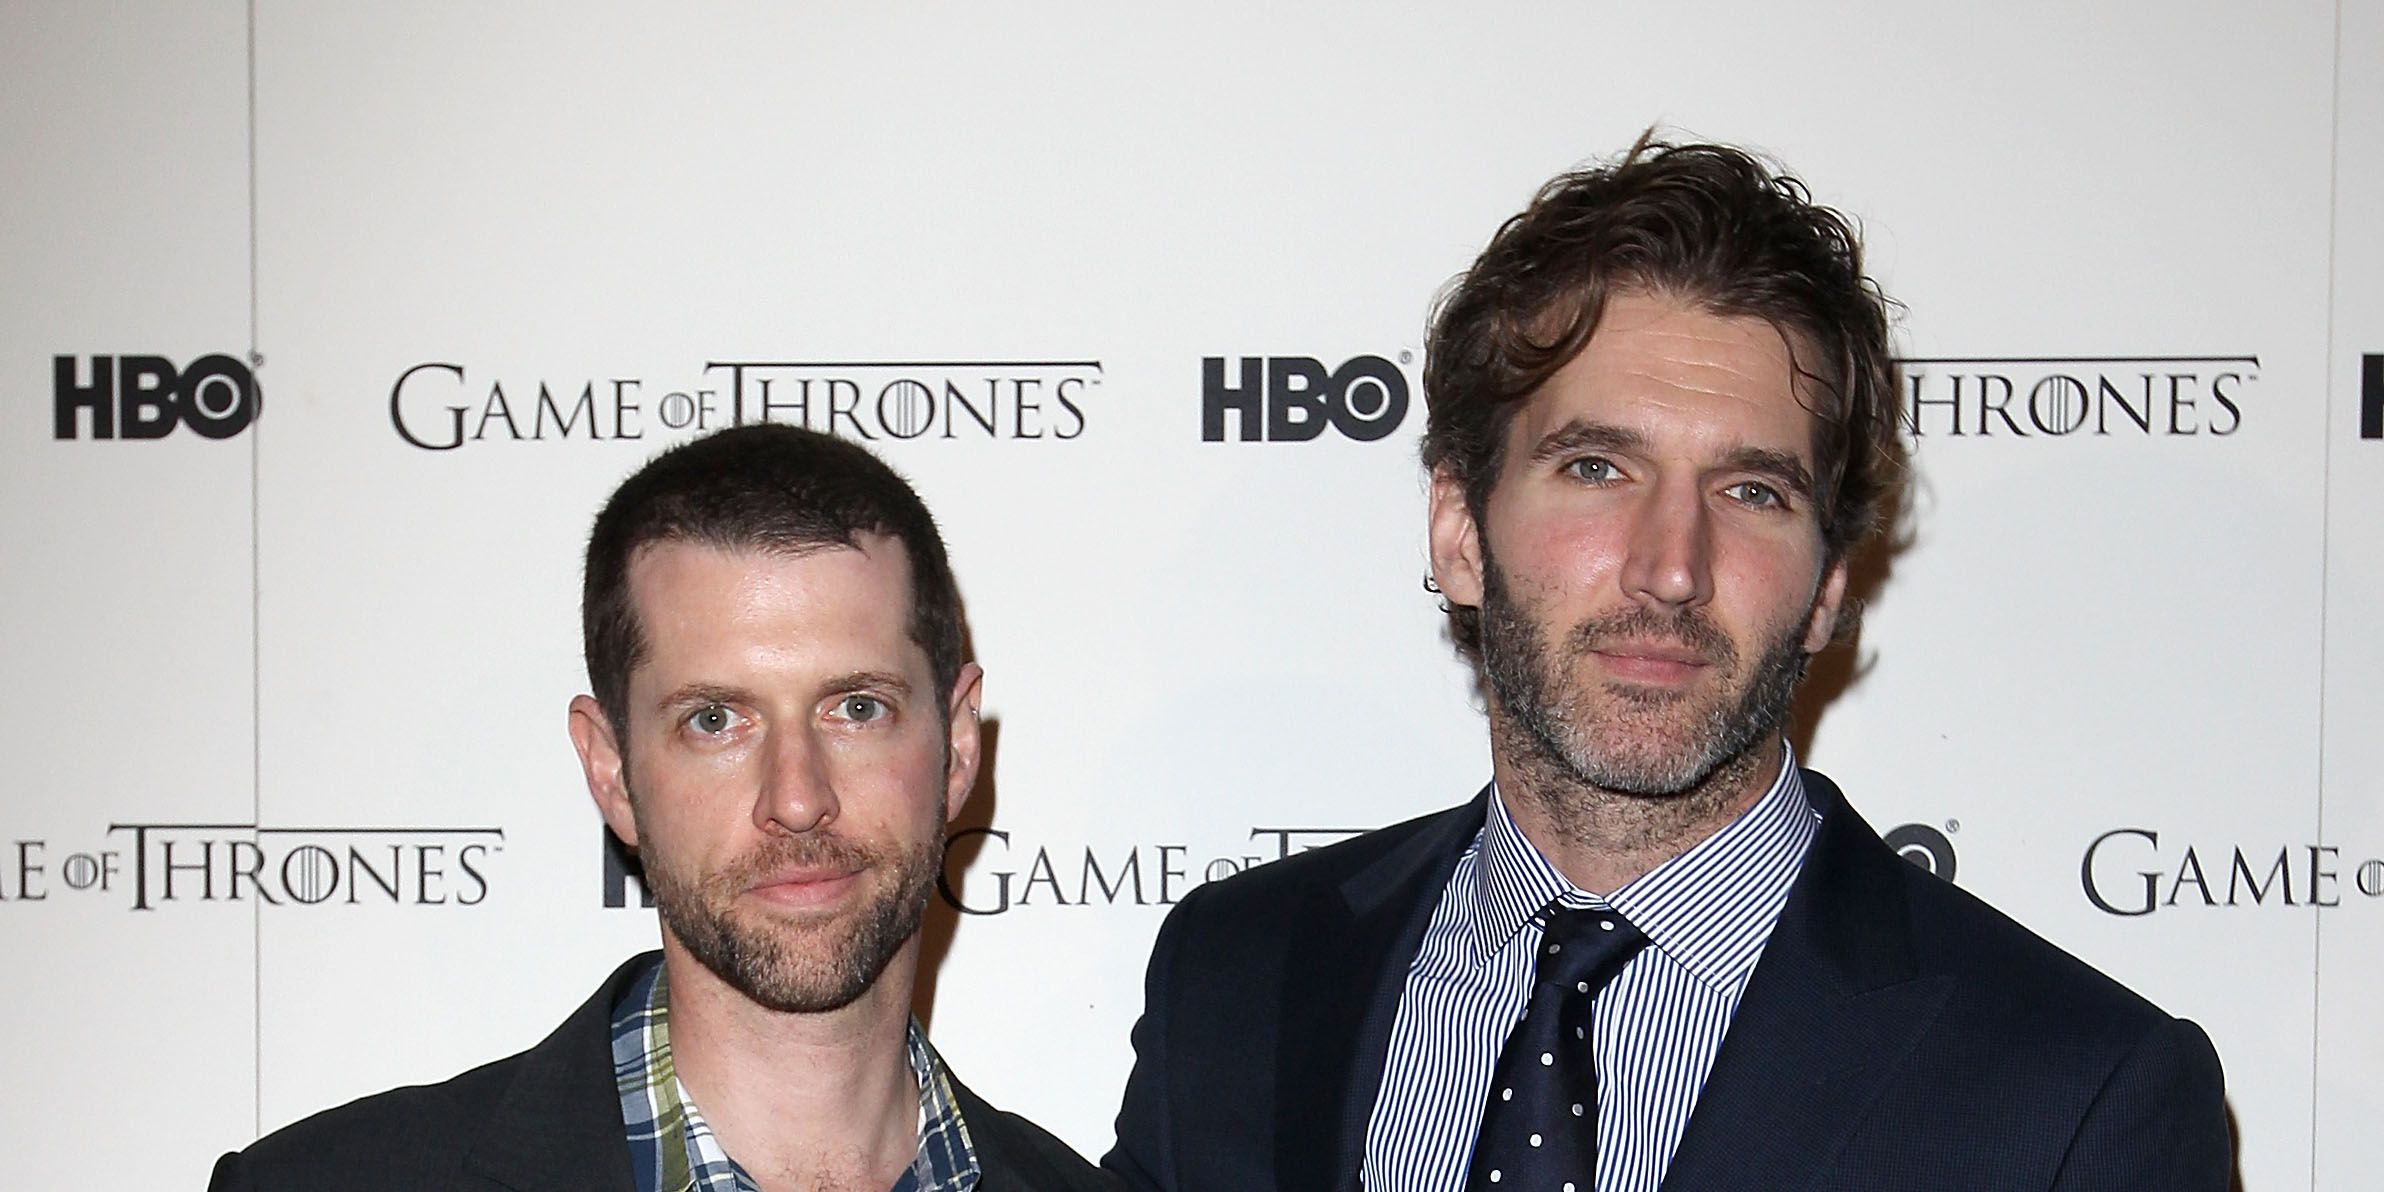 Game of Thrones showrunners